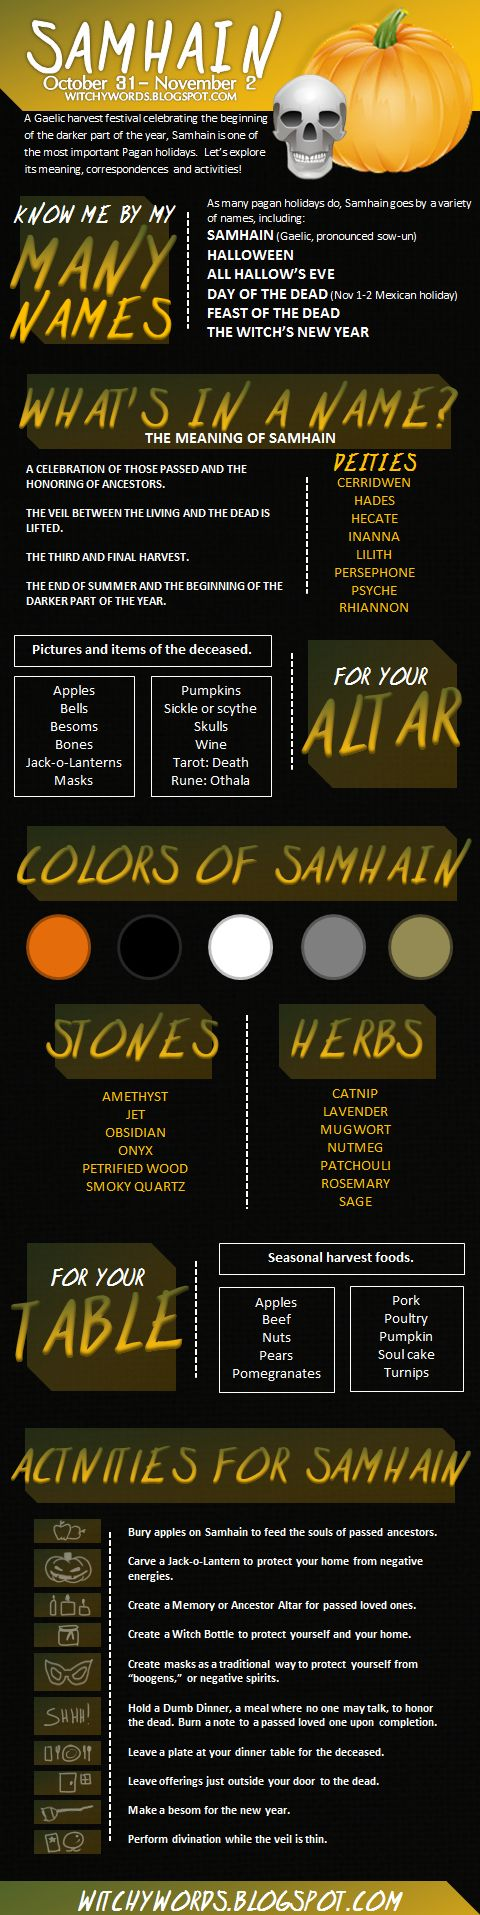 SAMHAIN (Oct. 31-Nov 02) Names, Correspondences and Activities Infographic ...